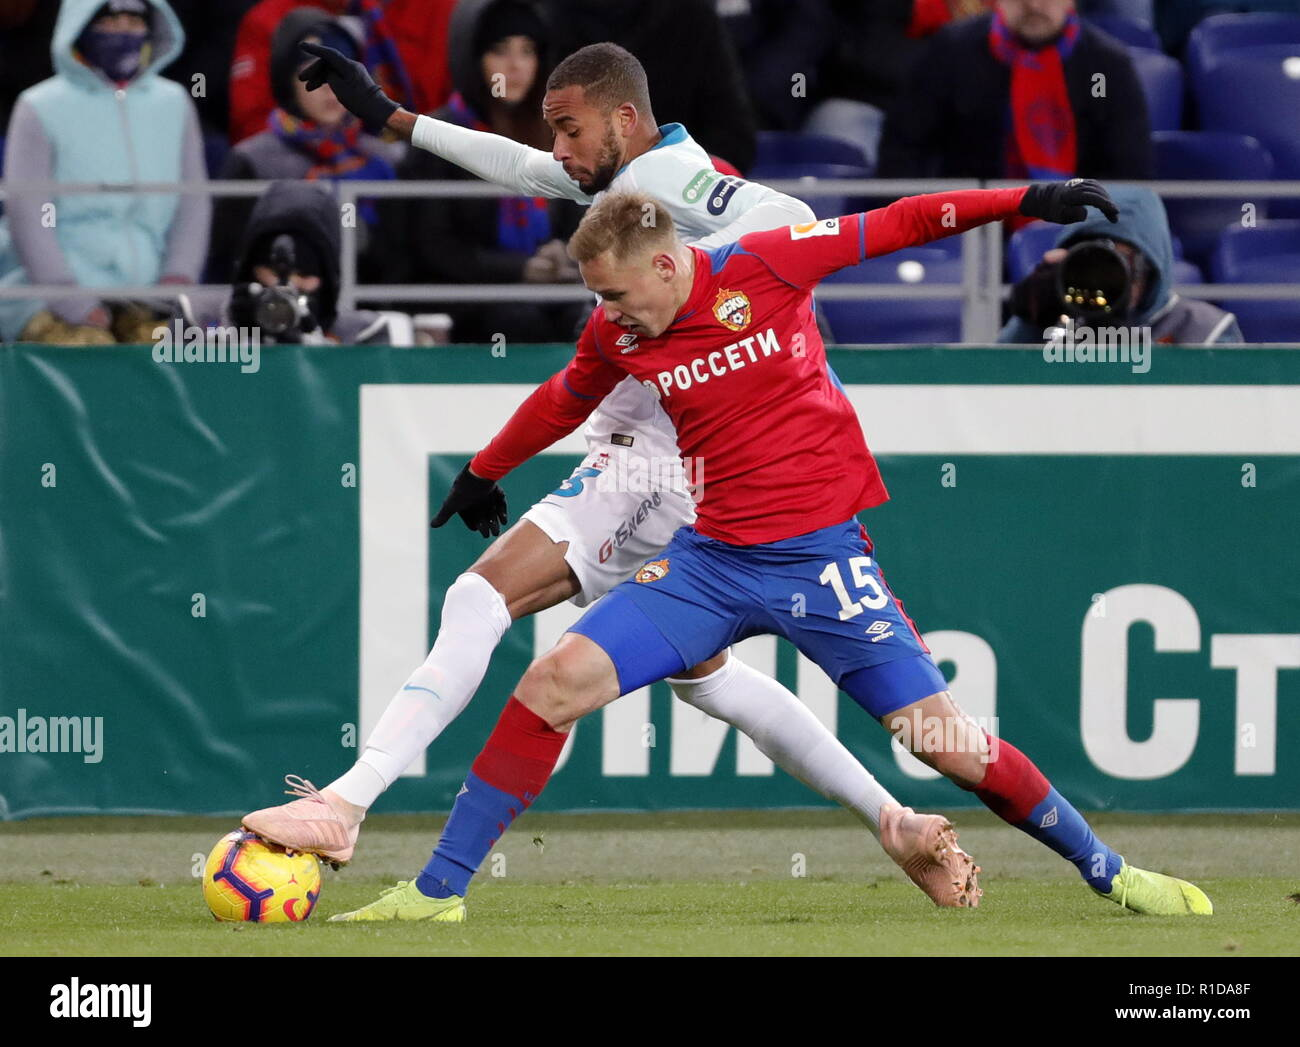 MOSCOW, RUSSIA – NOVERMBER 11, 2018: Zenit St Petersburg's Hernani (L) and CSKA Moscow's Dmitry Yefremov in action in their 2018/19 Russian Premier League Round 14 football match at VEB Arena Stadium. Mikhail Japaridze/TASS - Stock Image